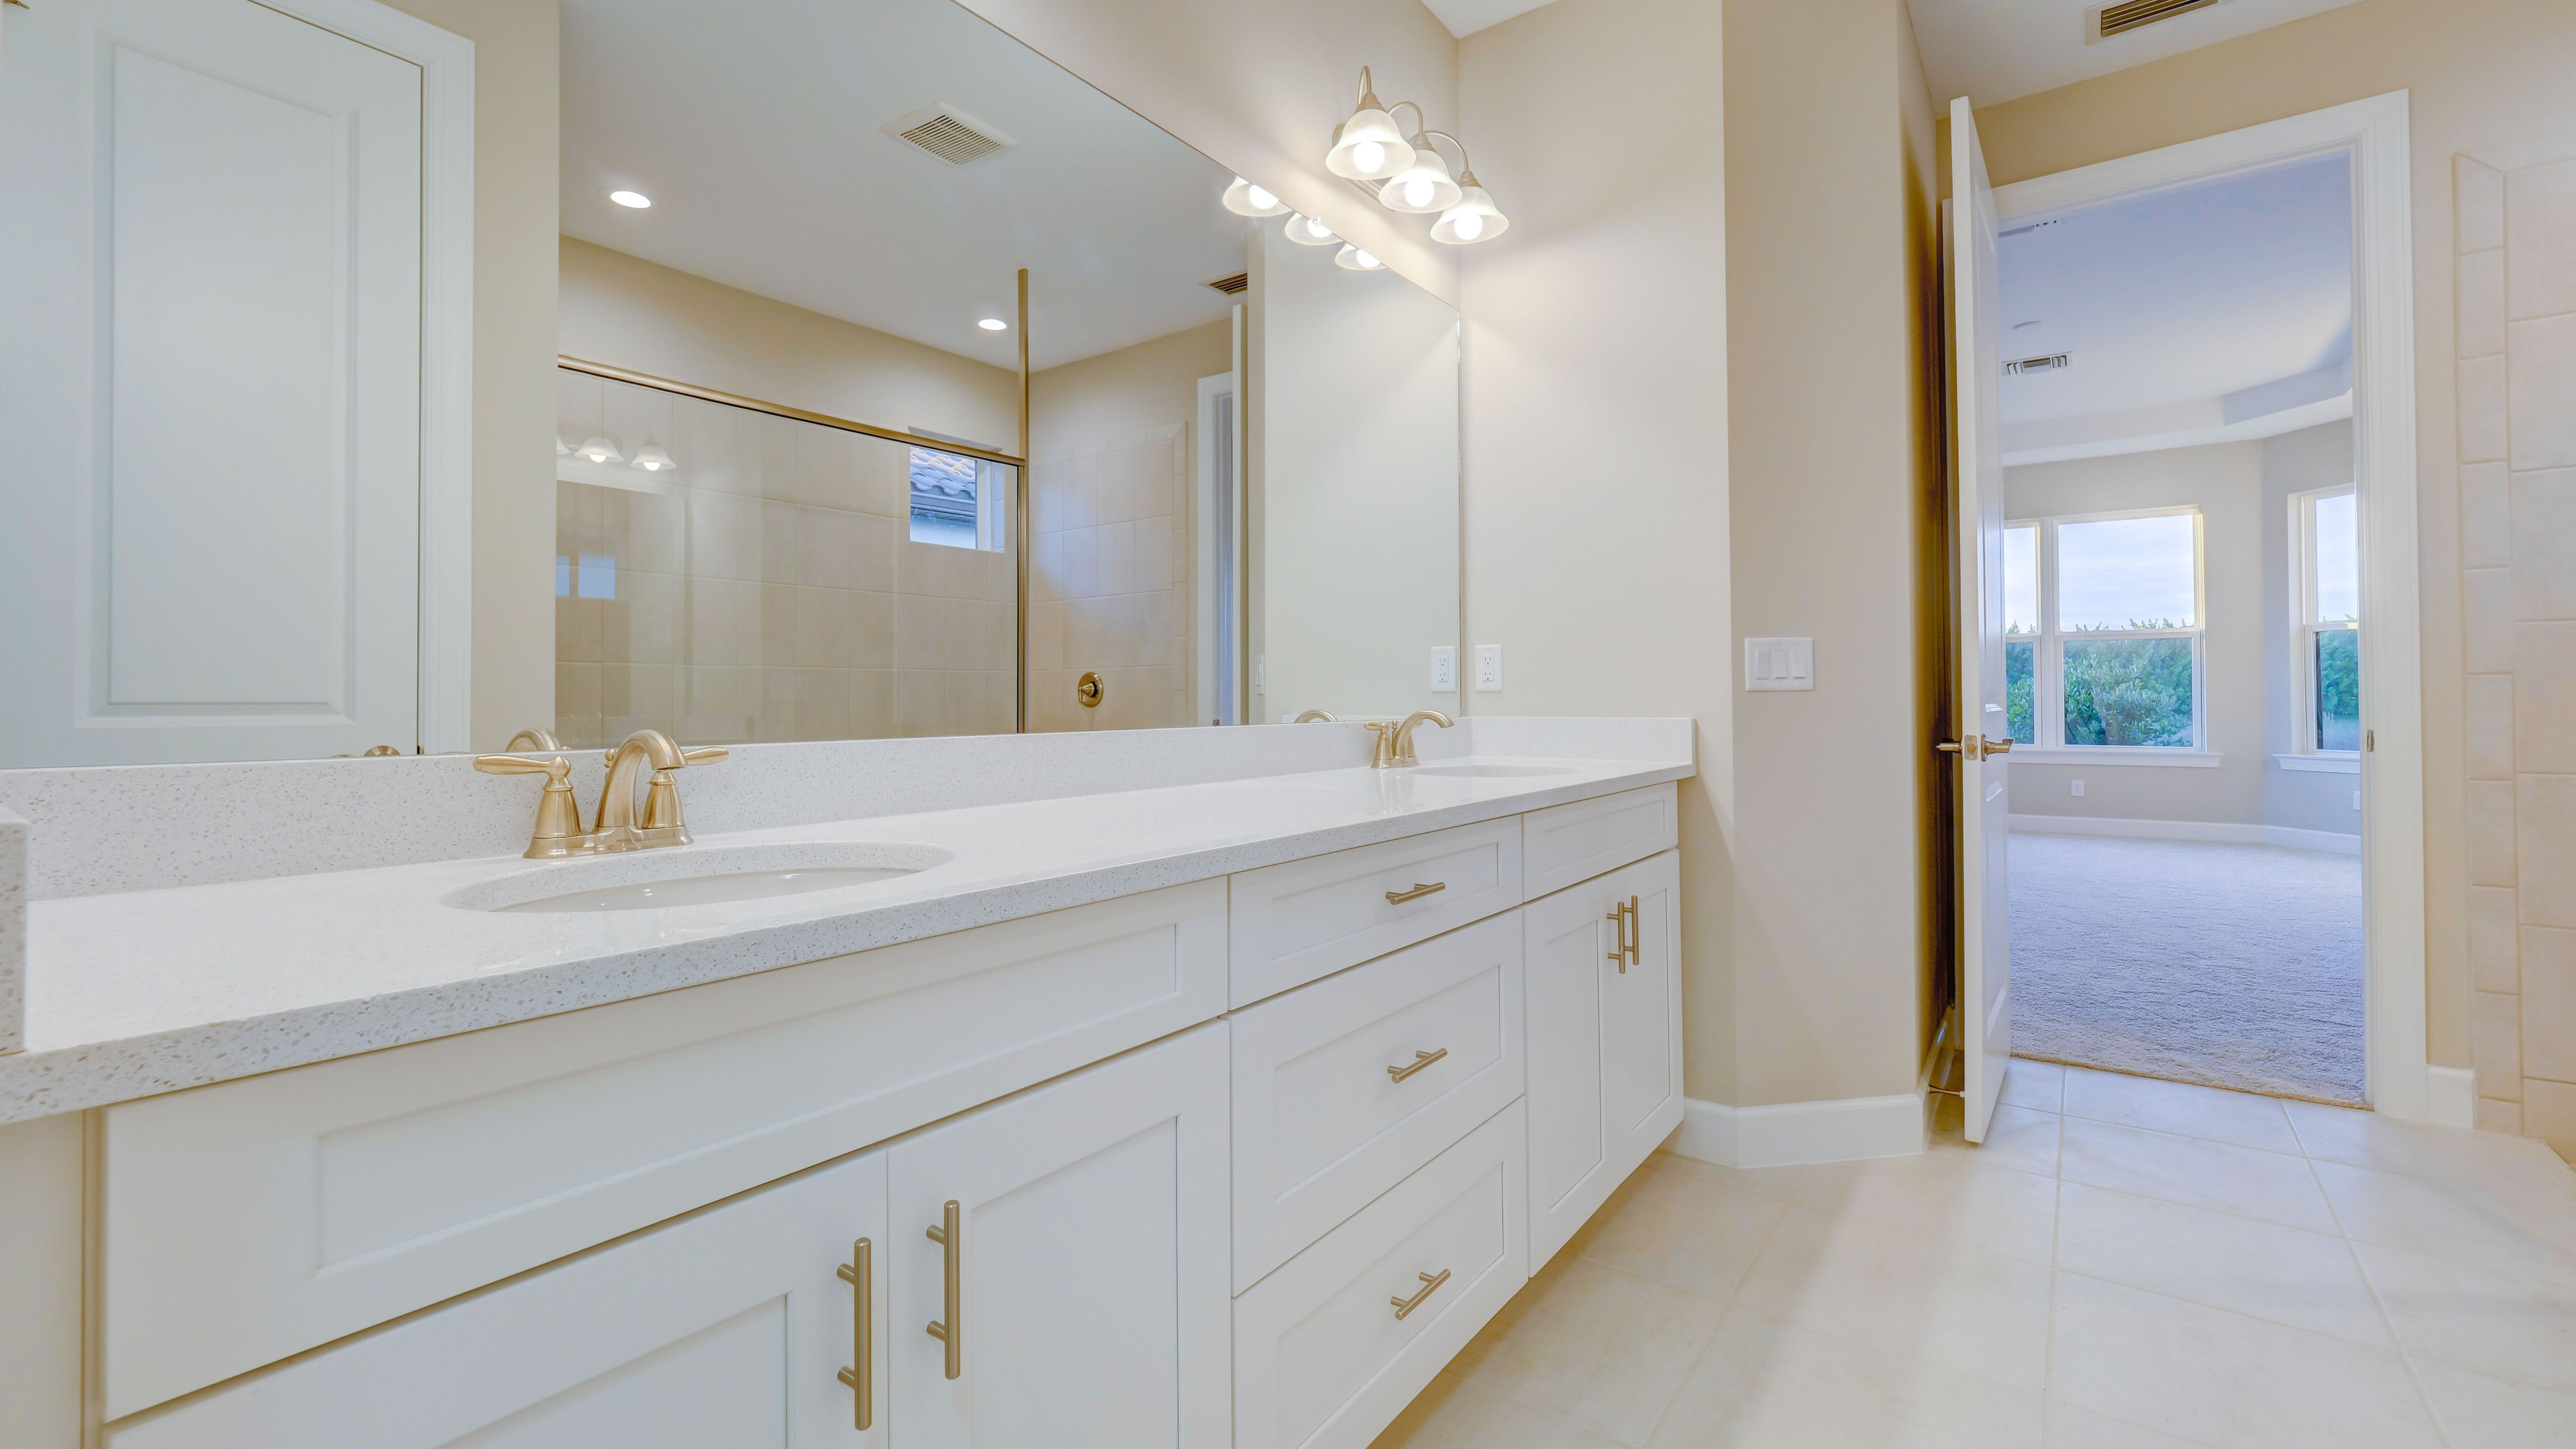 Bathroom featured in the Lazio 3 car Plan By Taylor Morrison in Naples, FL